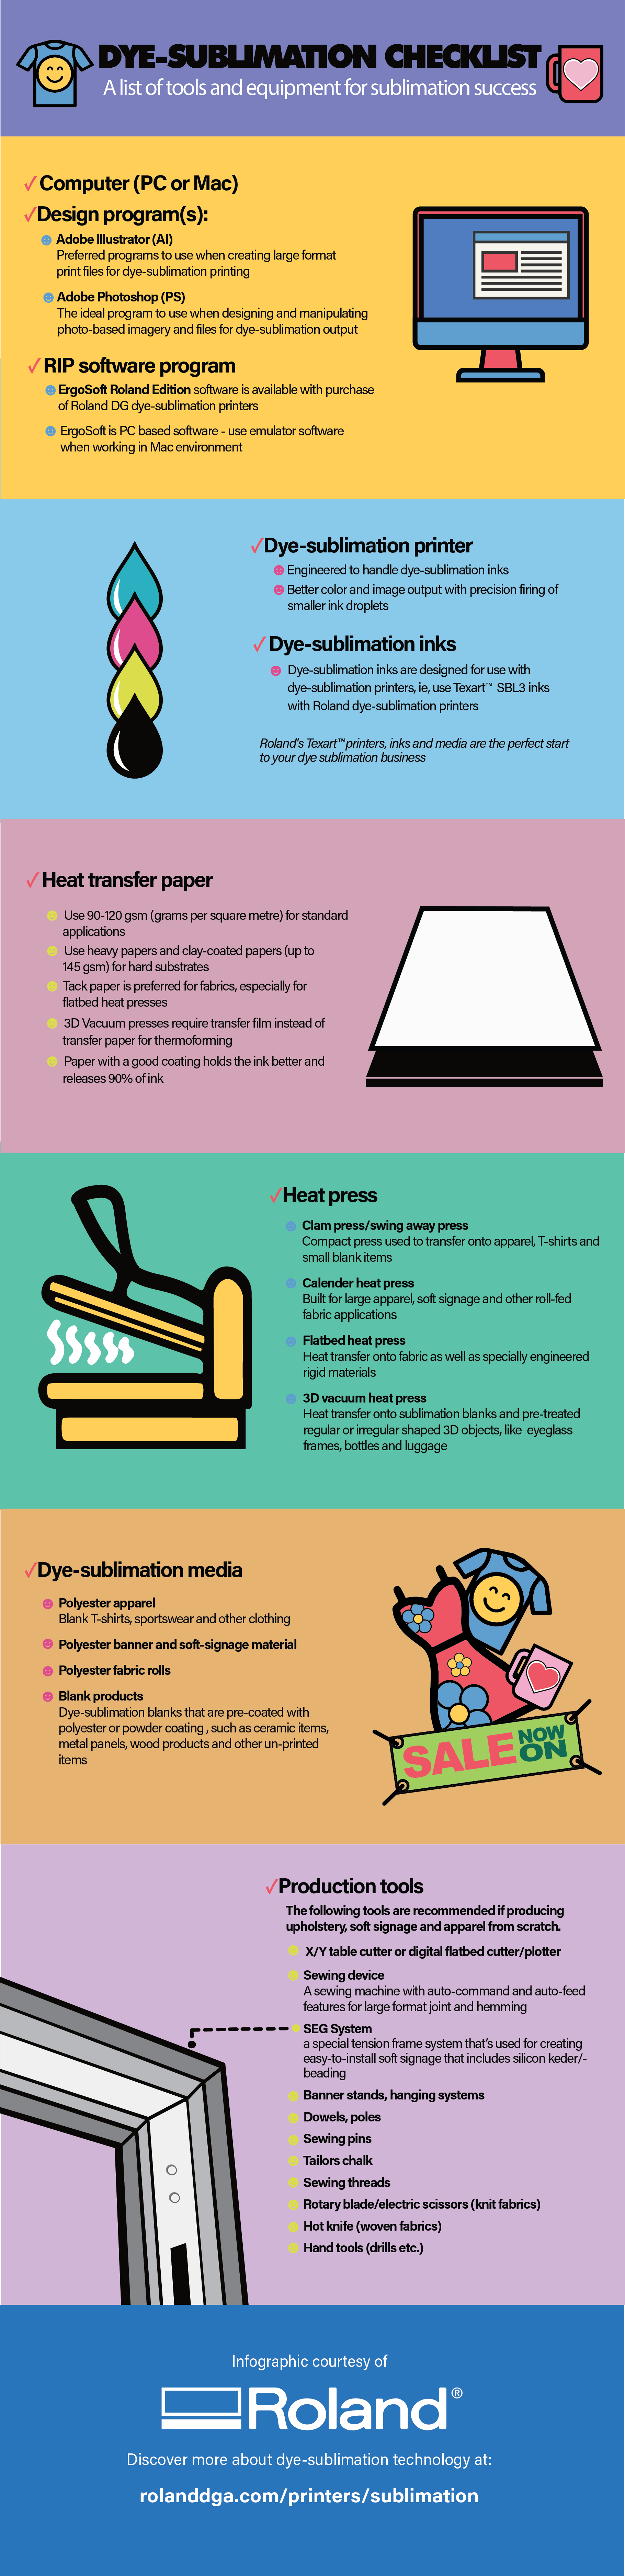 dye sublimation infographic